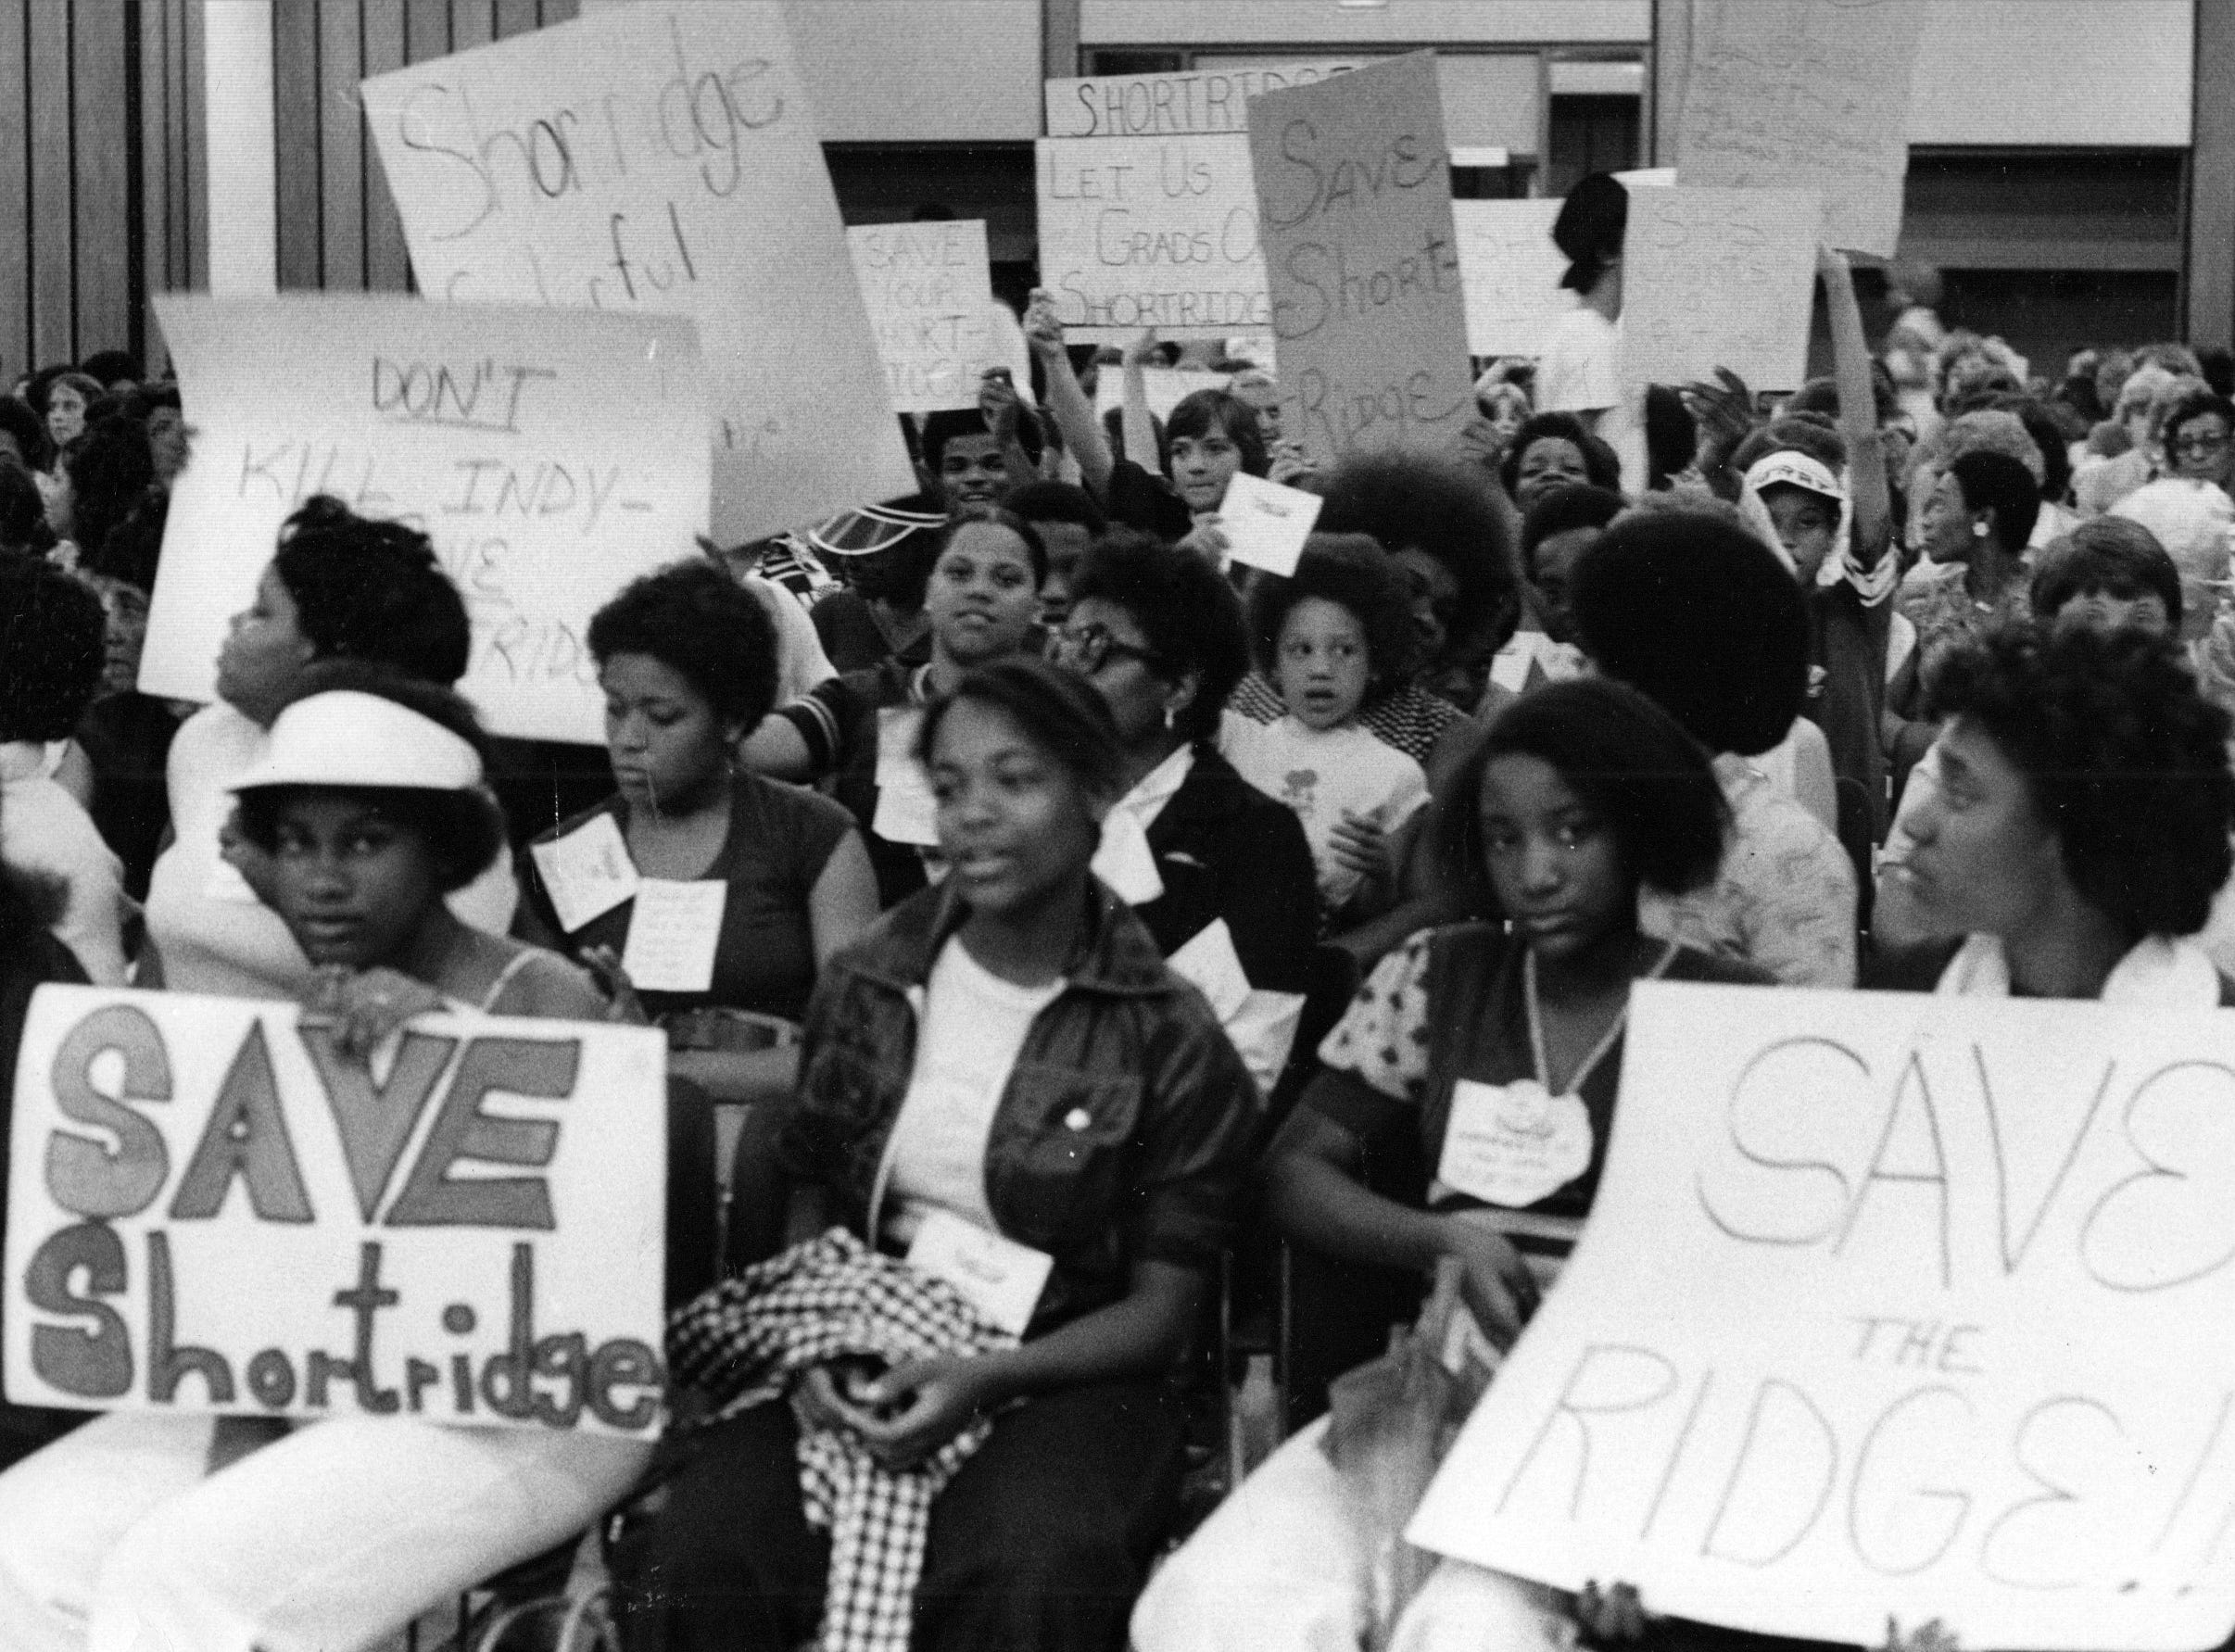 Shortridge students attend a school board meeting in 1977. The possible closing of Shortridge and Harry Wood High Schools set off an emotional demonstration. Shortridge remained open for a few more years, while Wood High School would close in 1978.